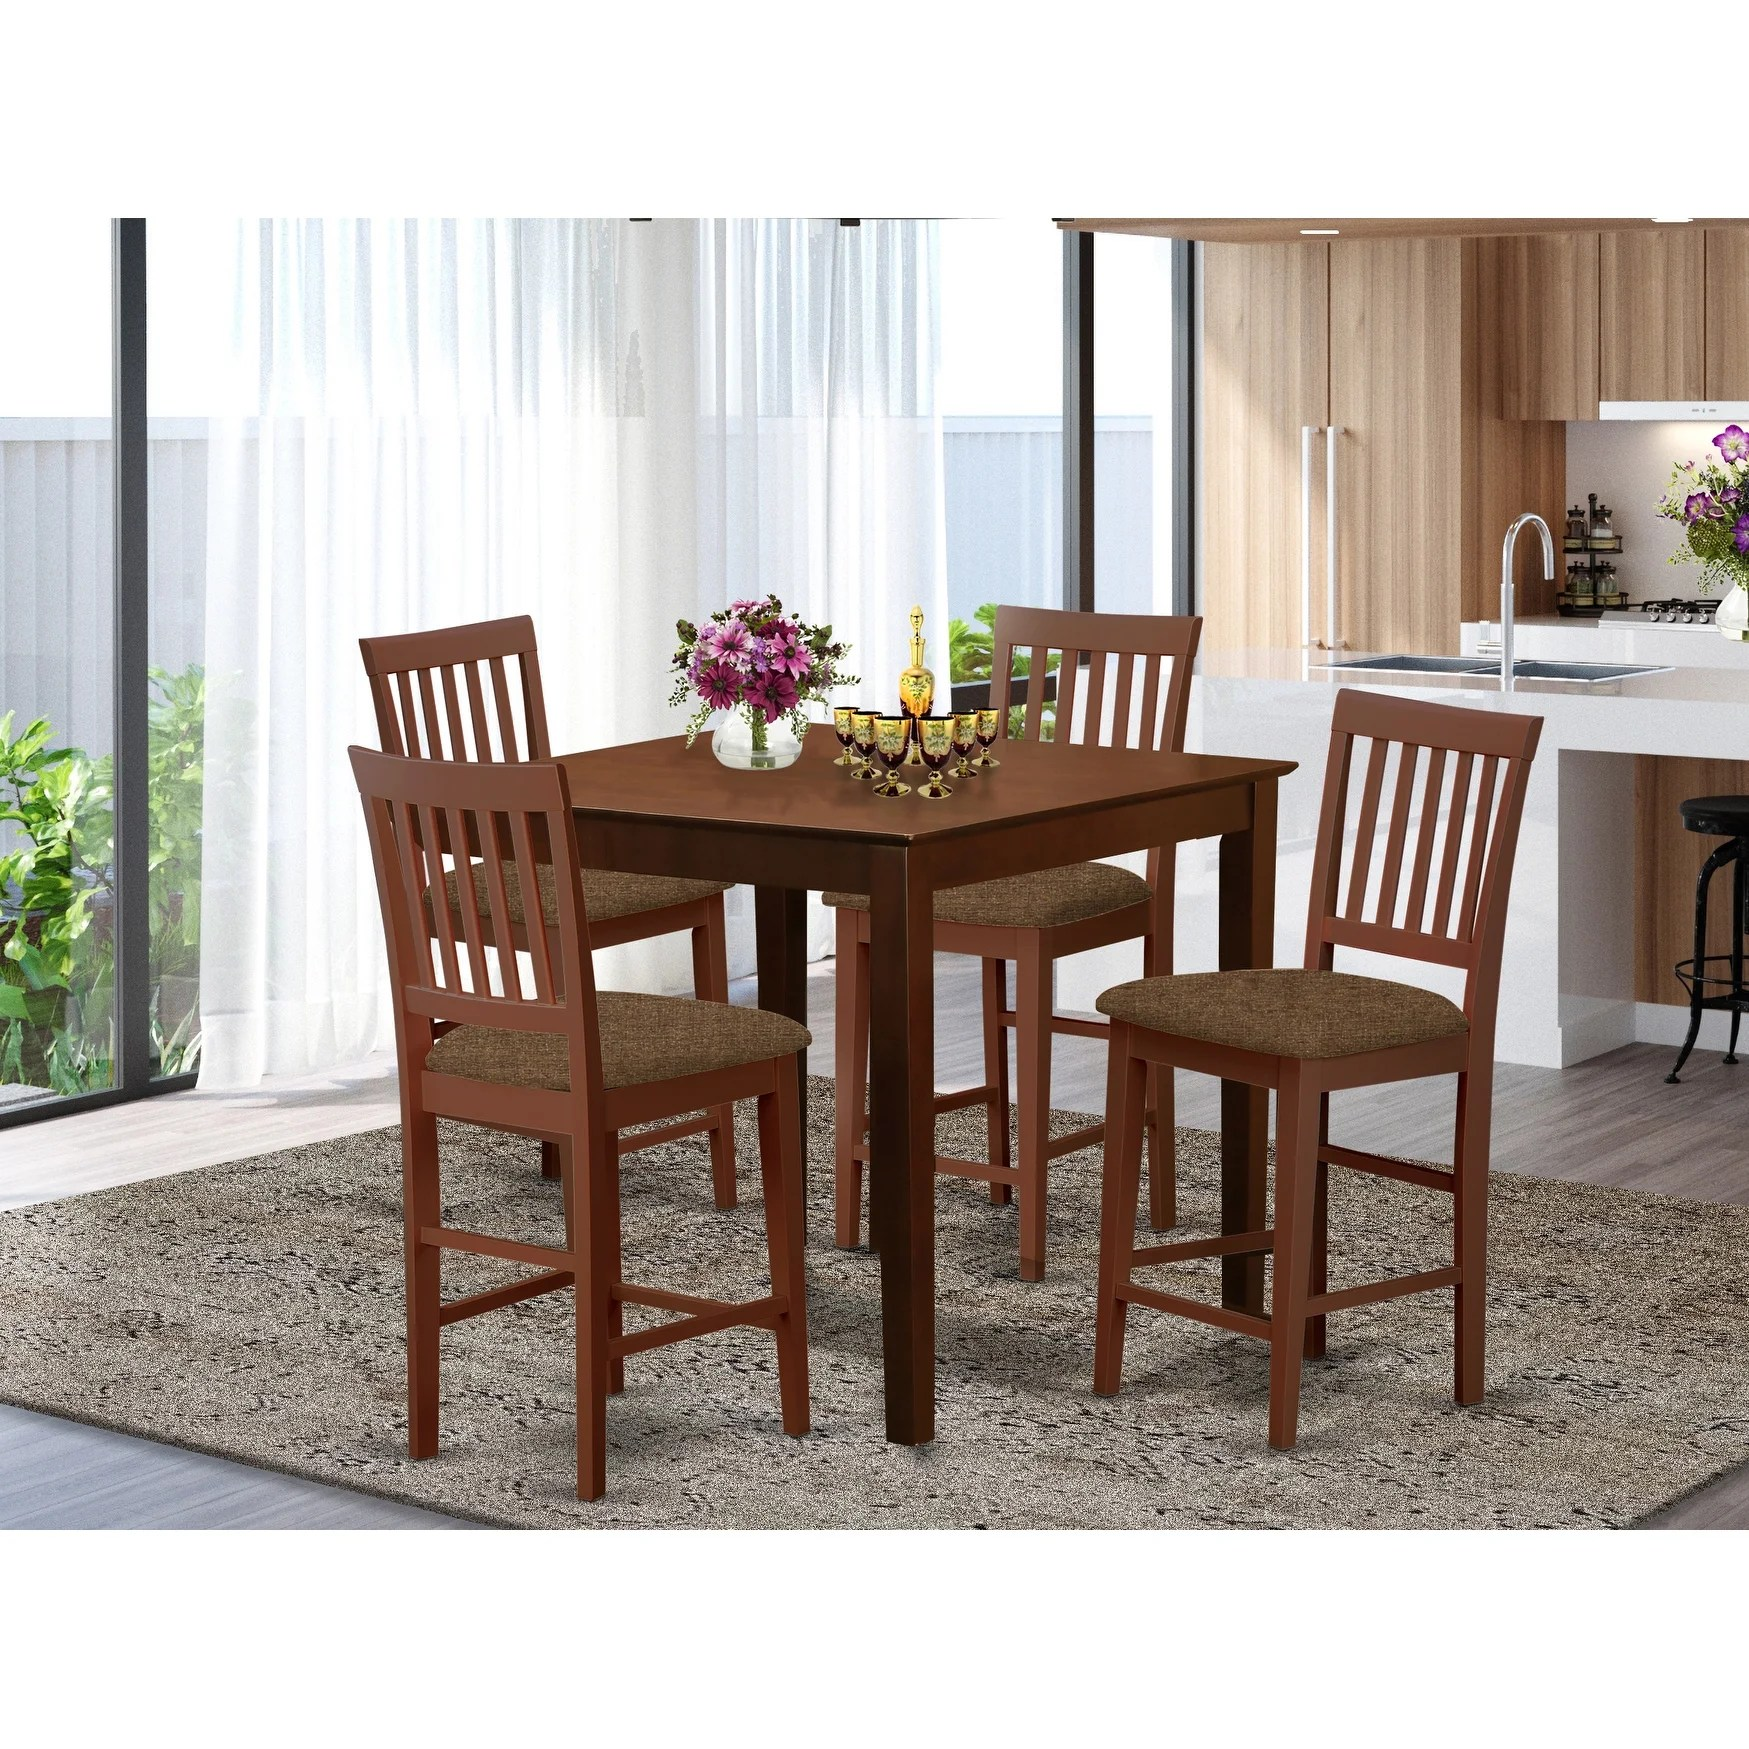 Shop Black Friday Deals On Mahogany Square Counter Height Table And 4 Counter Height Chairs 5 Piece Dining Set On Sale Overstock 10201132